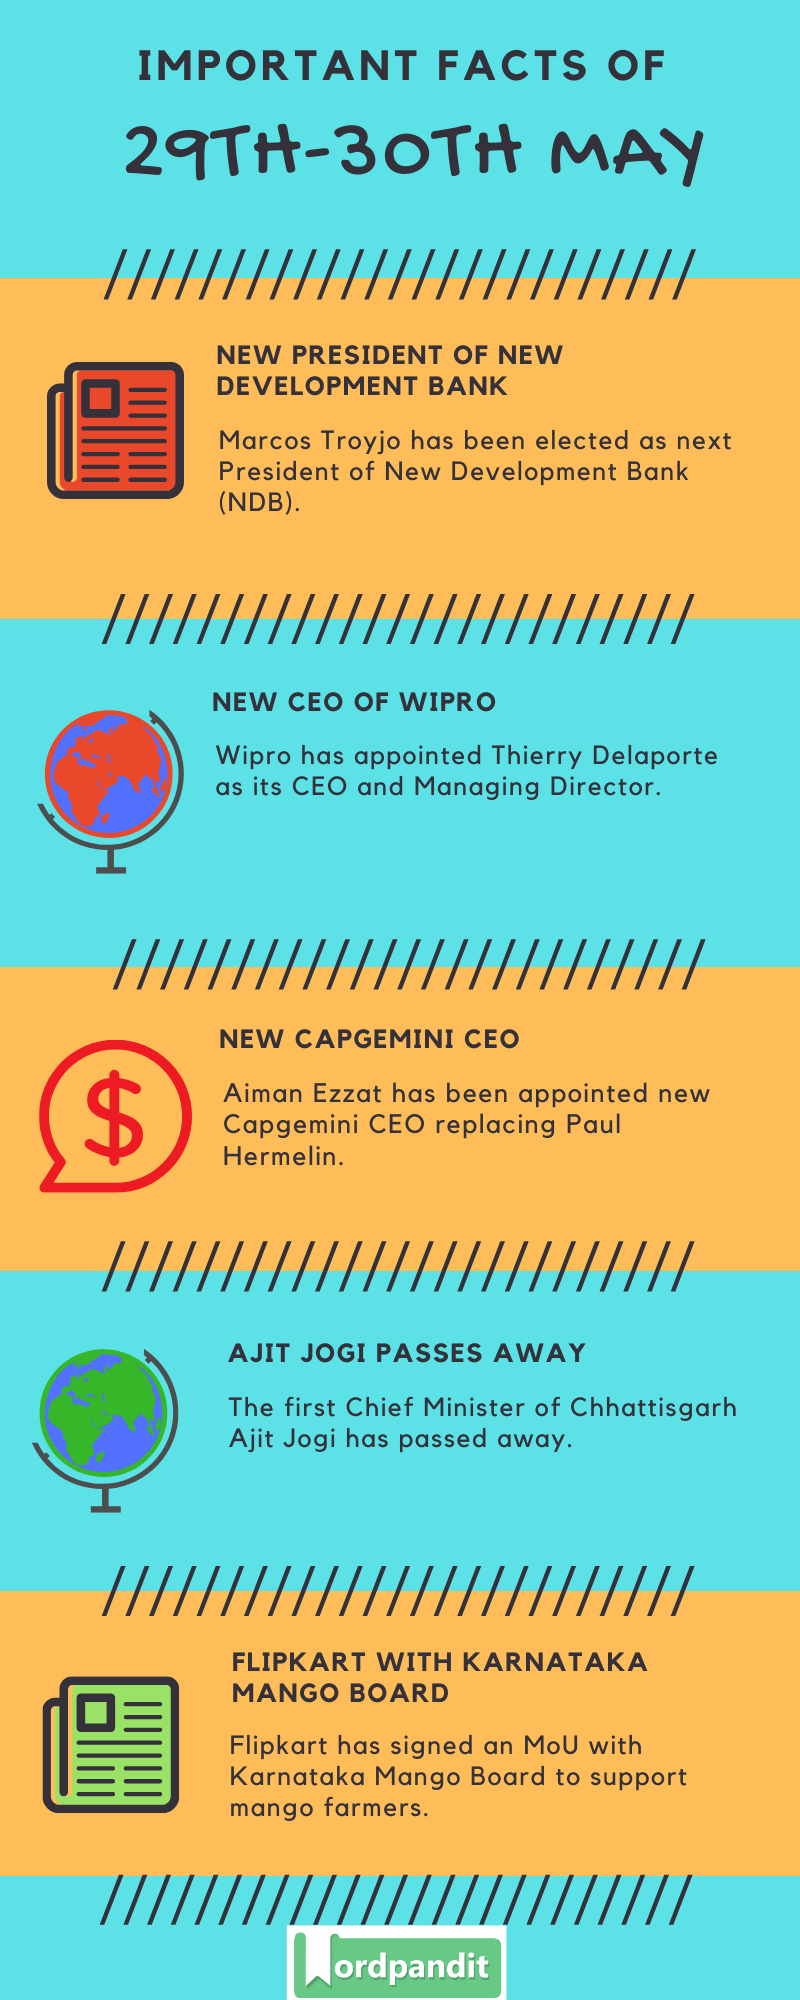 Daily Current Affairs 29th-30th May 2020 Current Affairs Quiz 29th-30th May 2020 Current Affairs Infographic